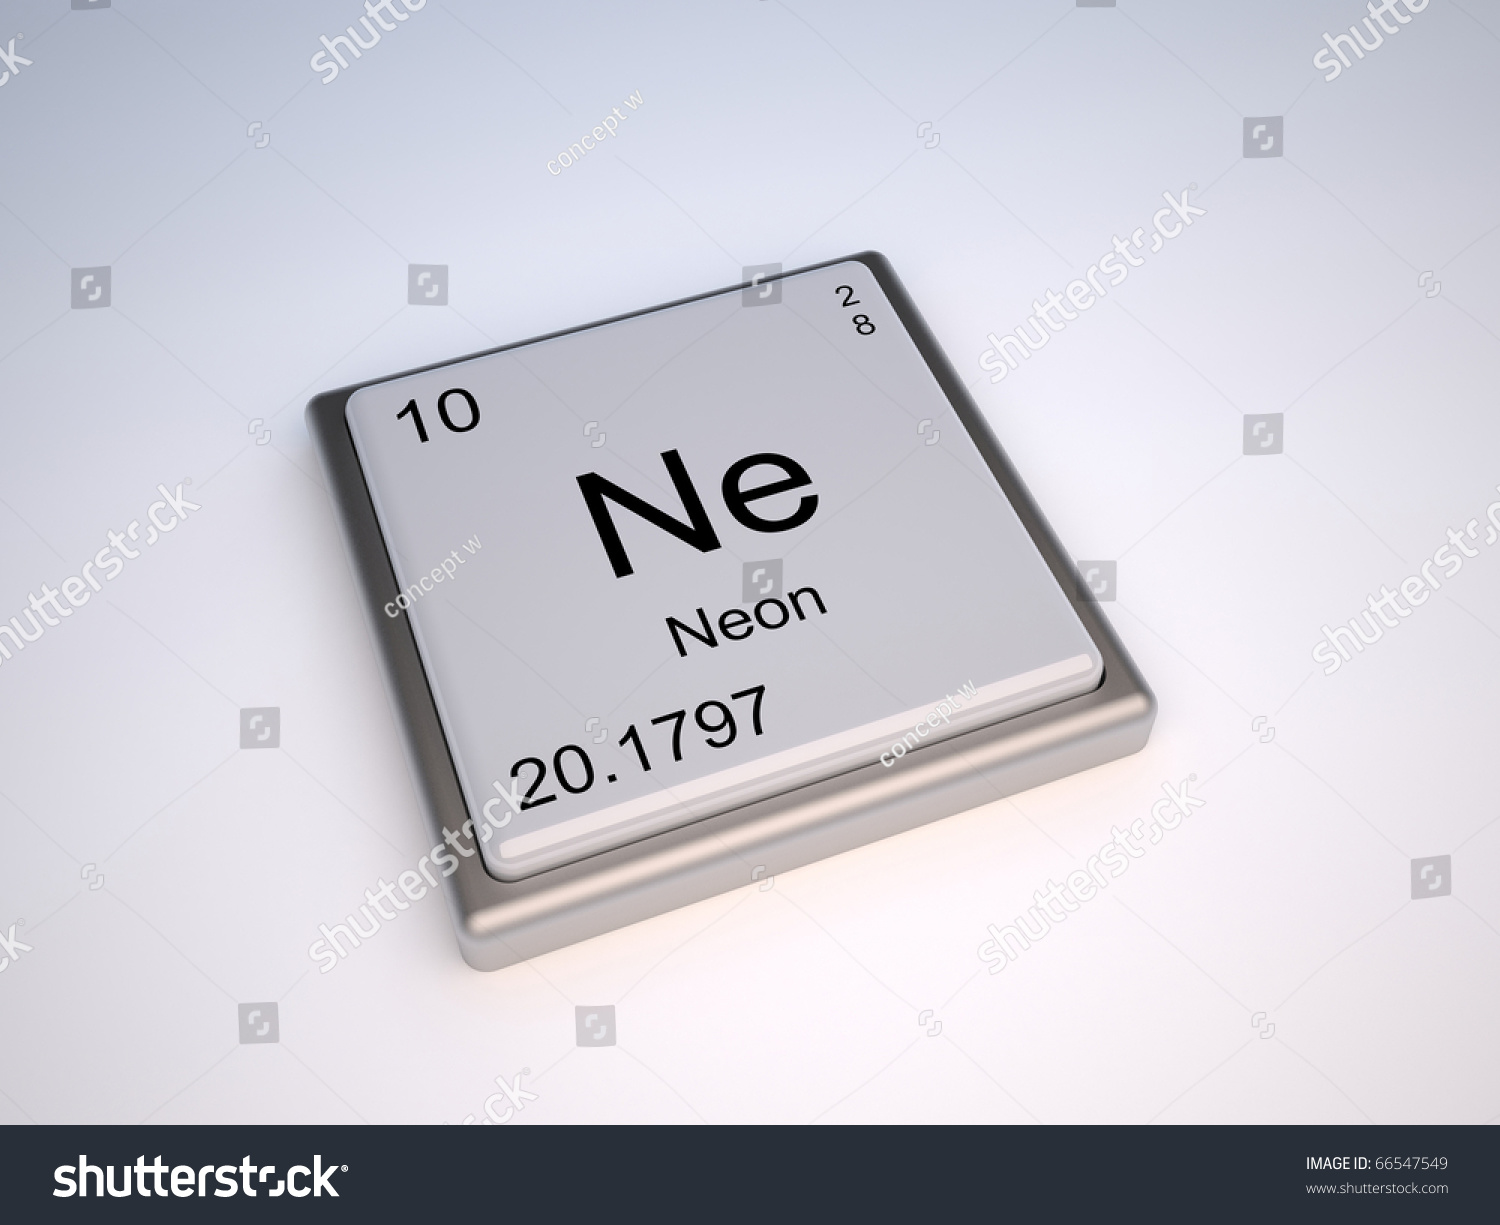 Neon chemical element periodic table symbol stock illustration neon chemical element of the periodic table with symbol ne gamestrikefo Image collections